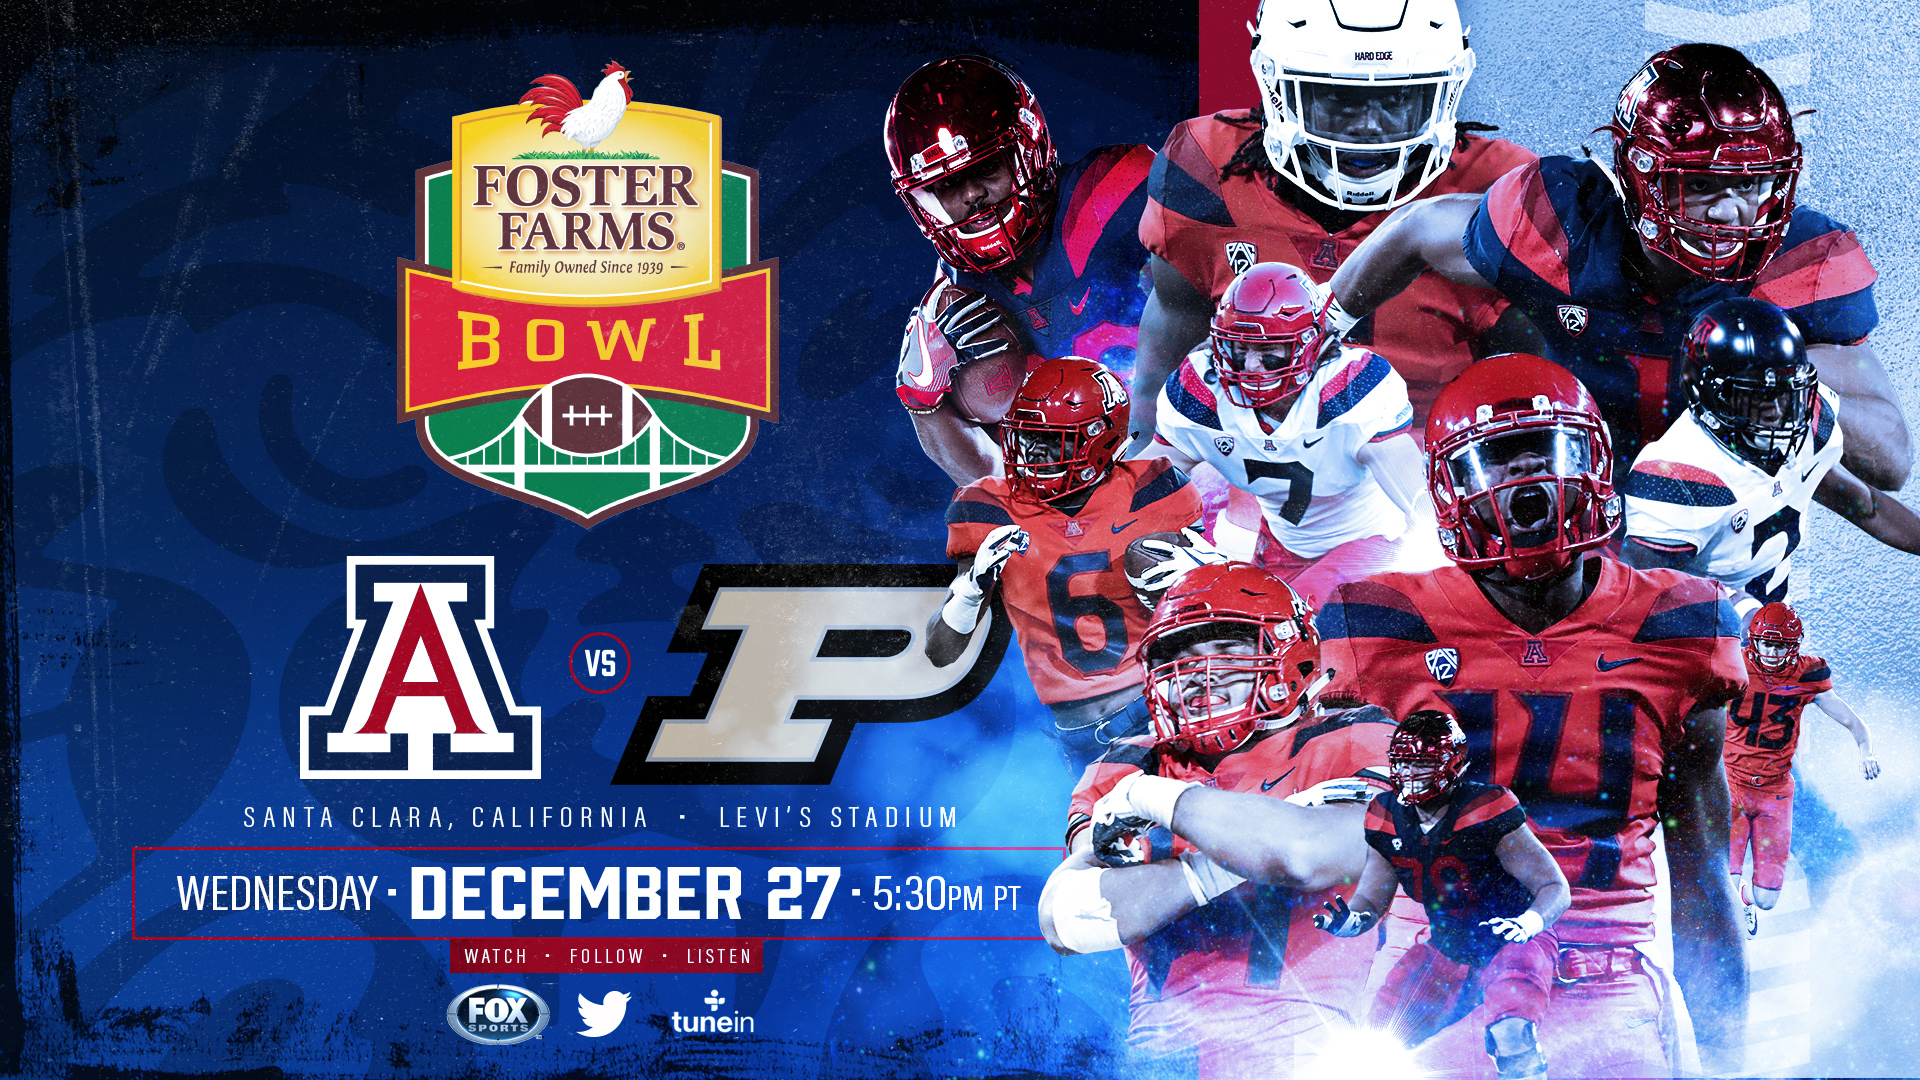 Arizona Football to Meet Purdue in Foster Farms Bowl